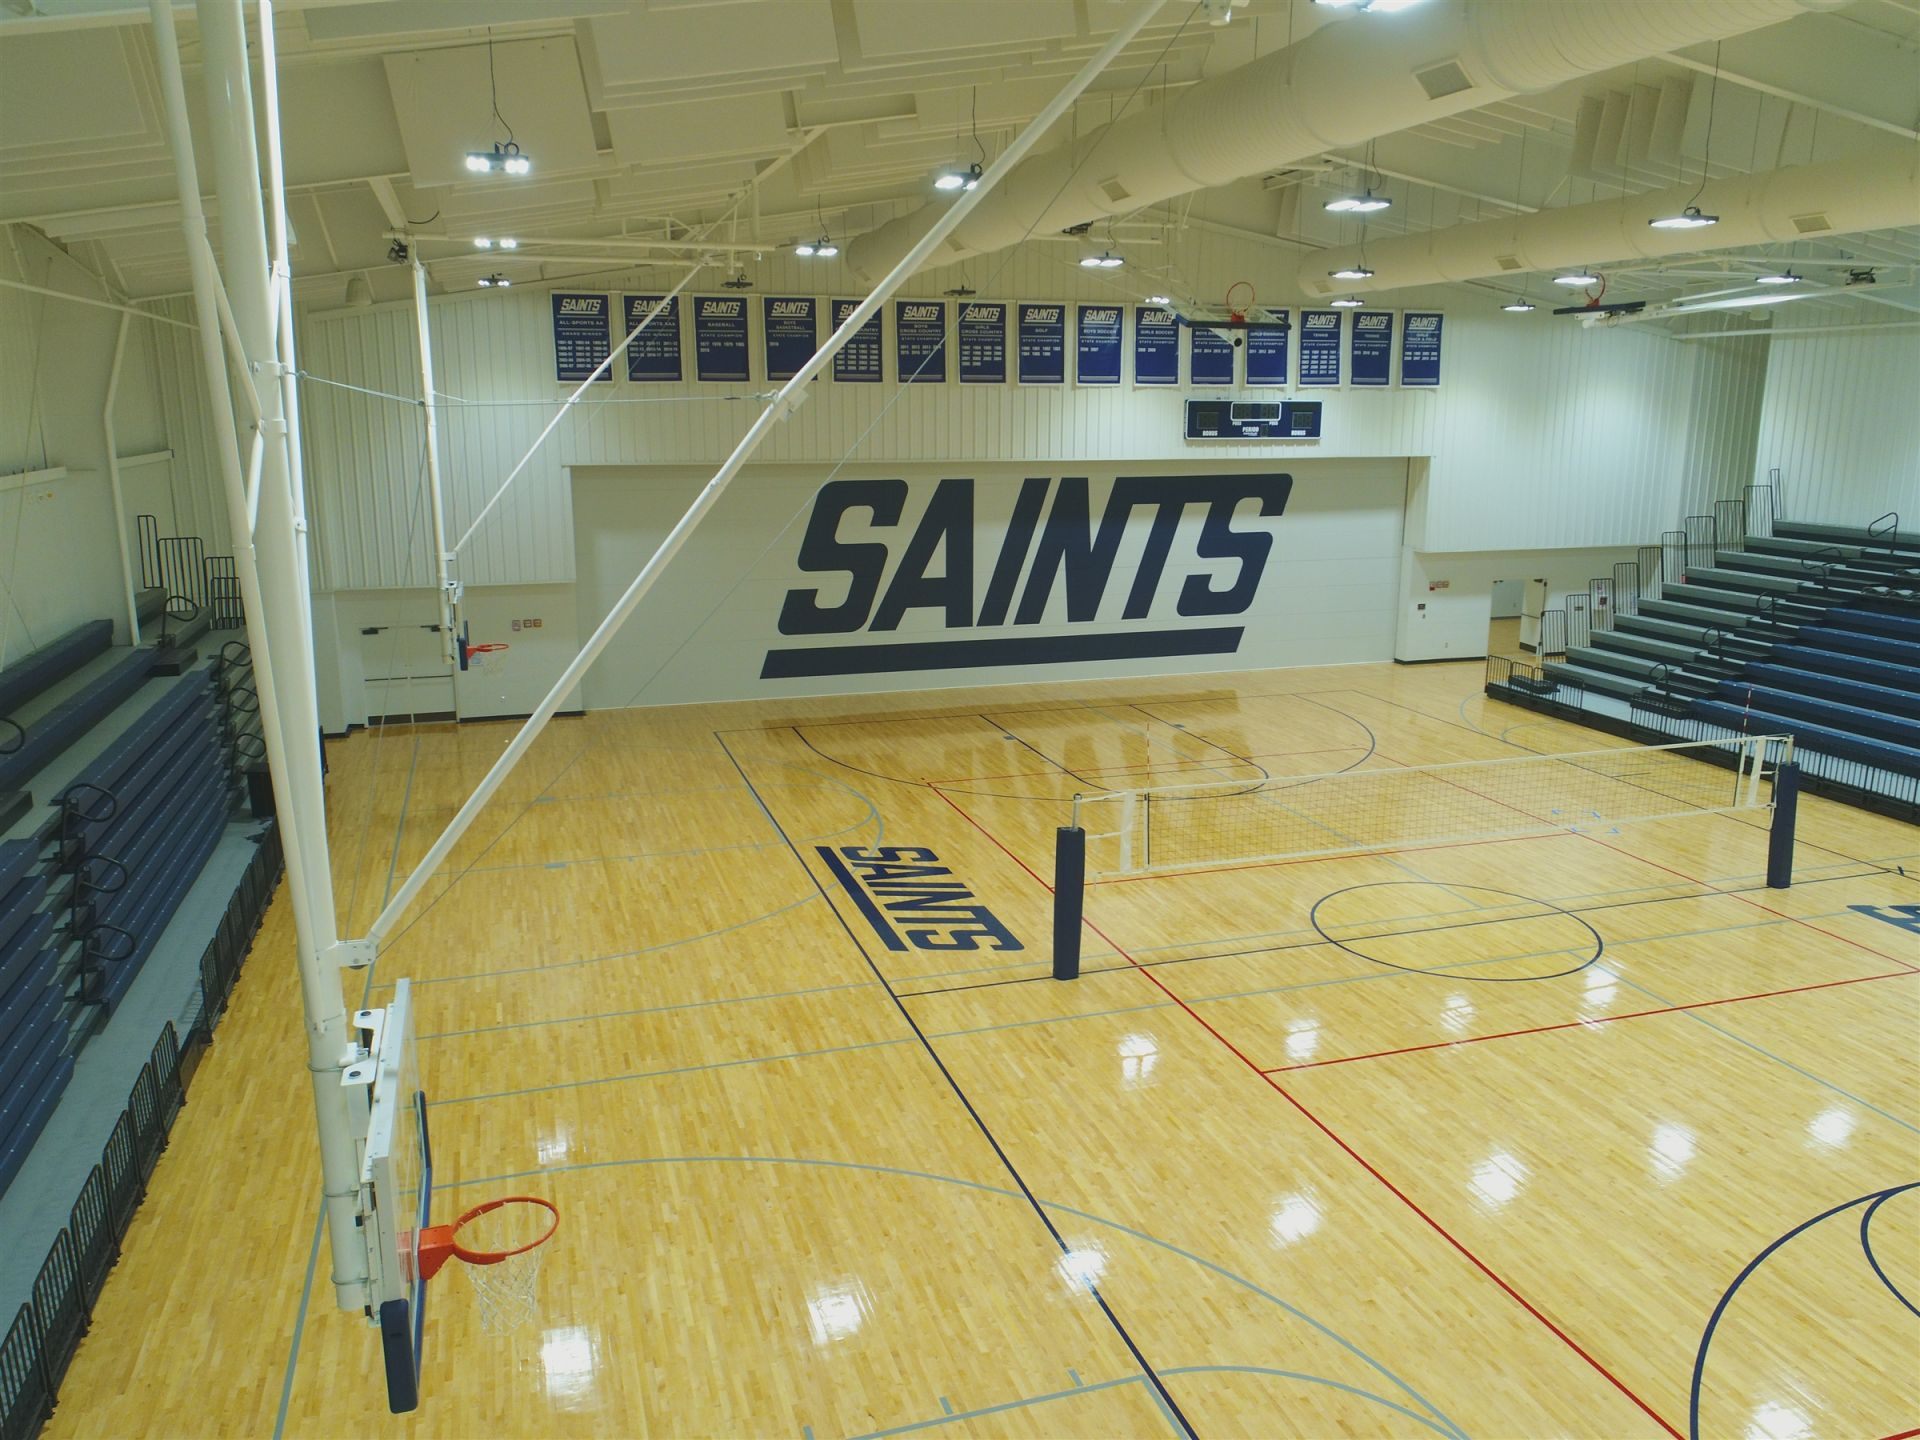 The Saints play basketball and volleyball in the ARC.